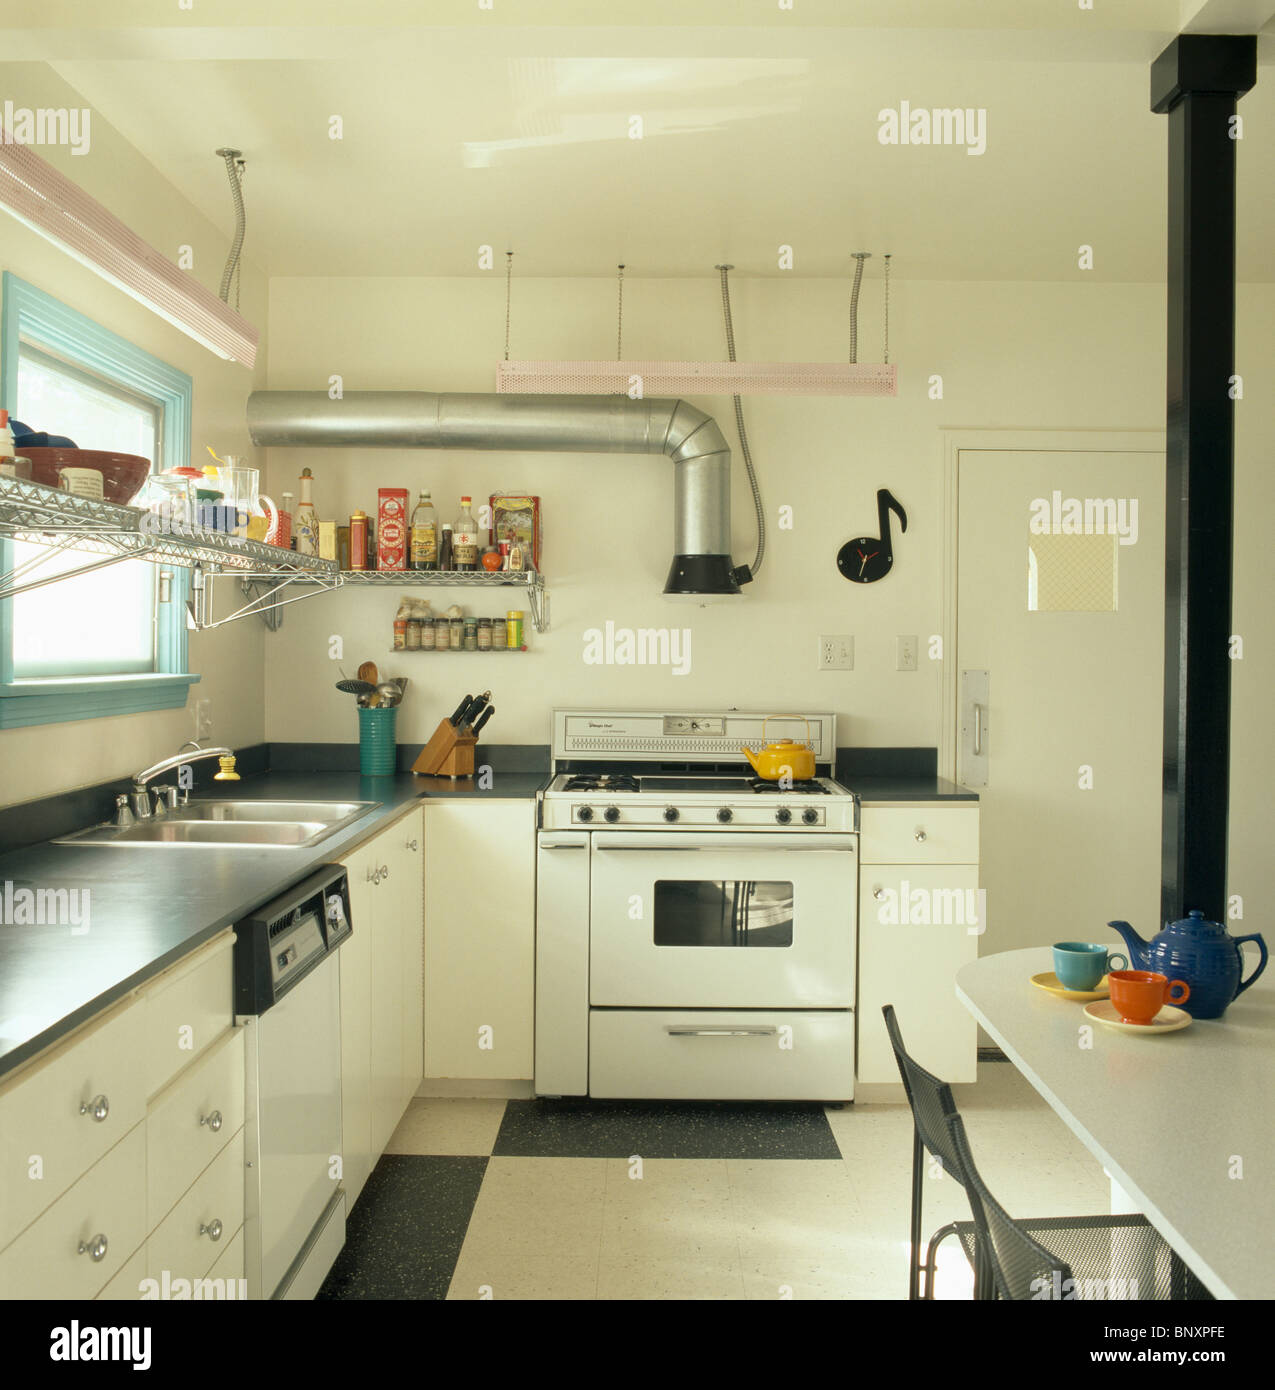 stainless steel extractor pipe and white range oven in. Black Bedroom Furniture Sets. Home Design Ideas